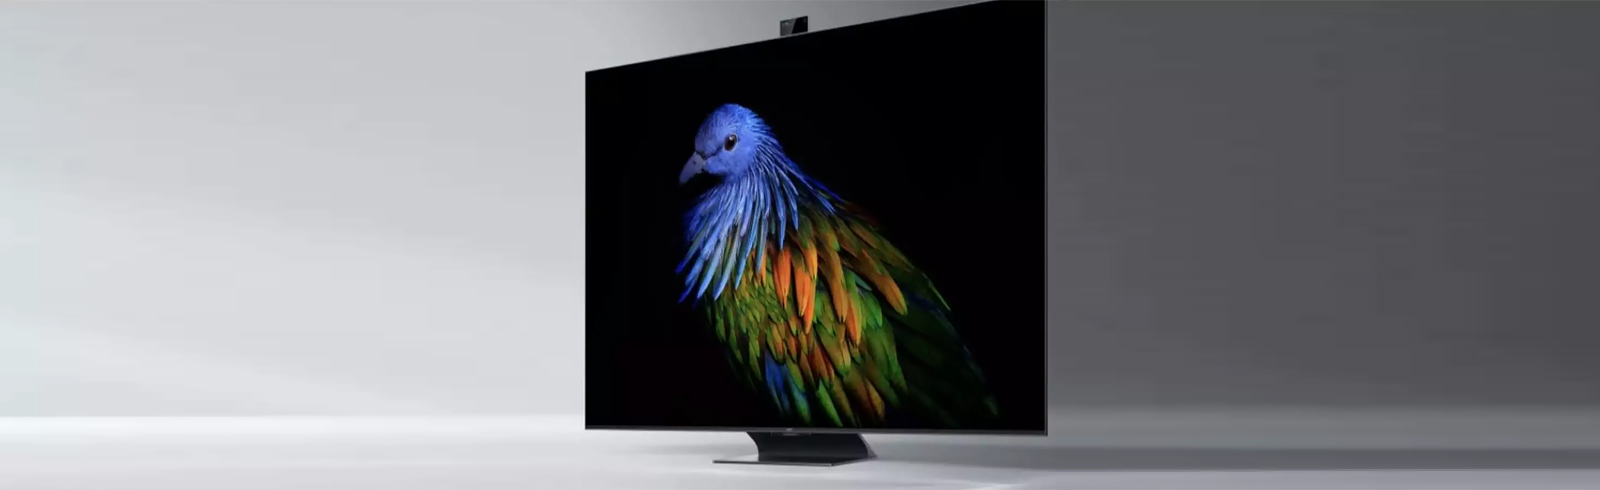 Xiaomi Mi TV 6 Extreme Edition and Mi TV ES are launched